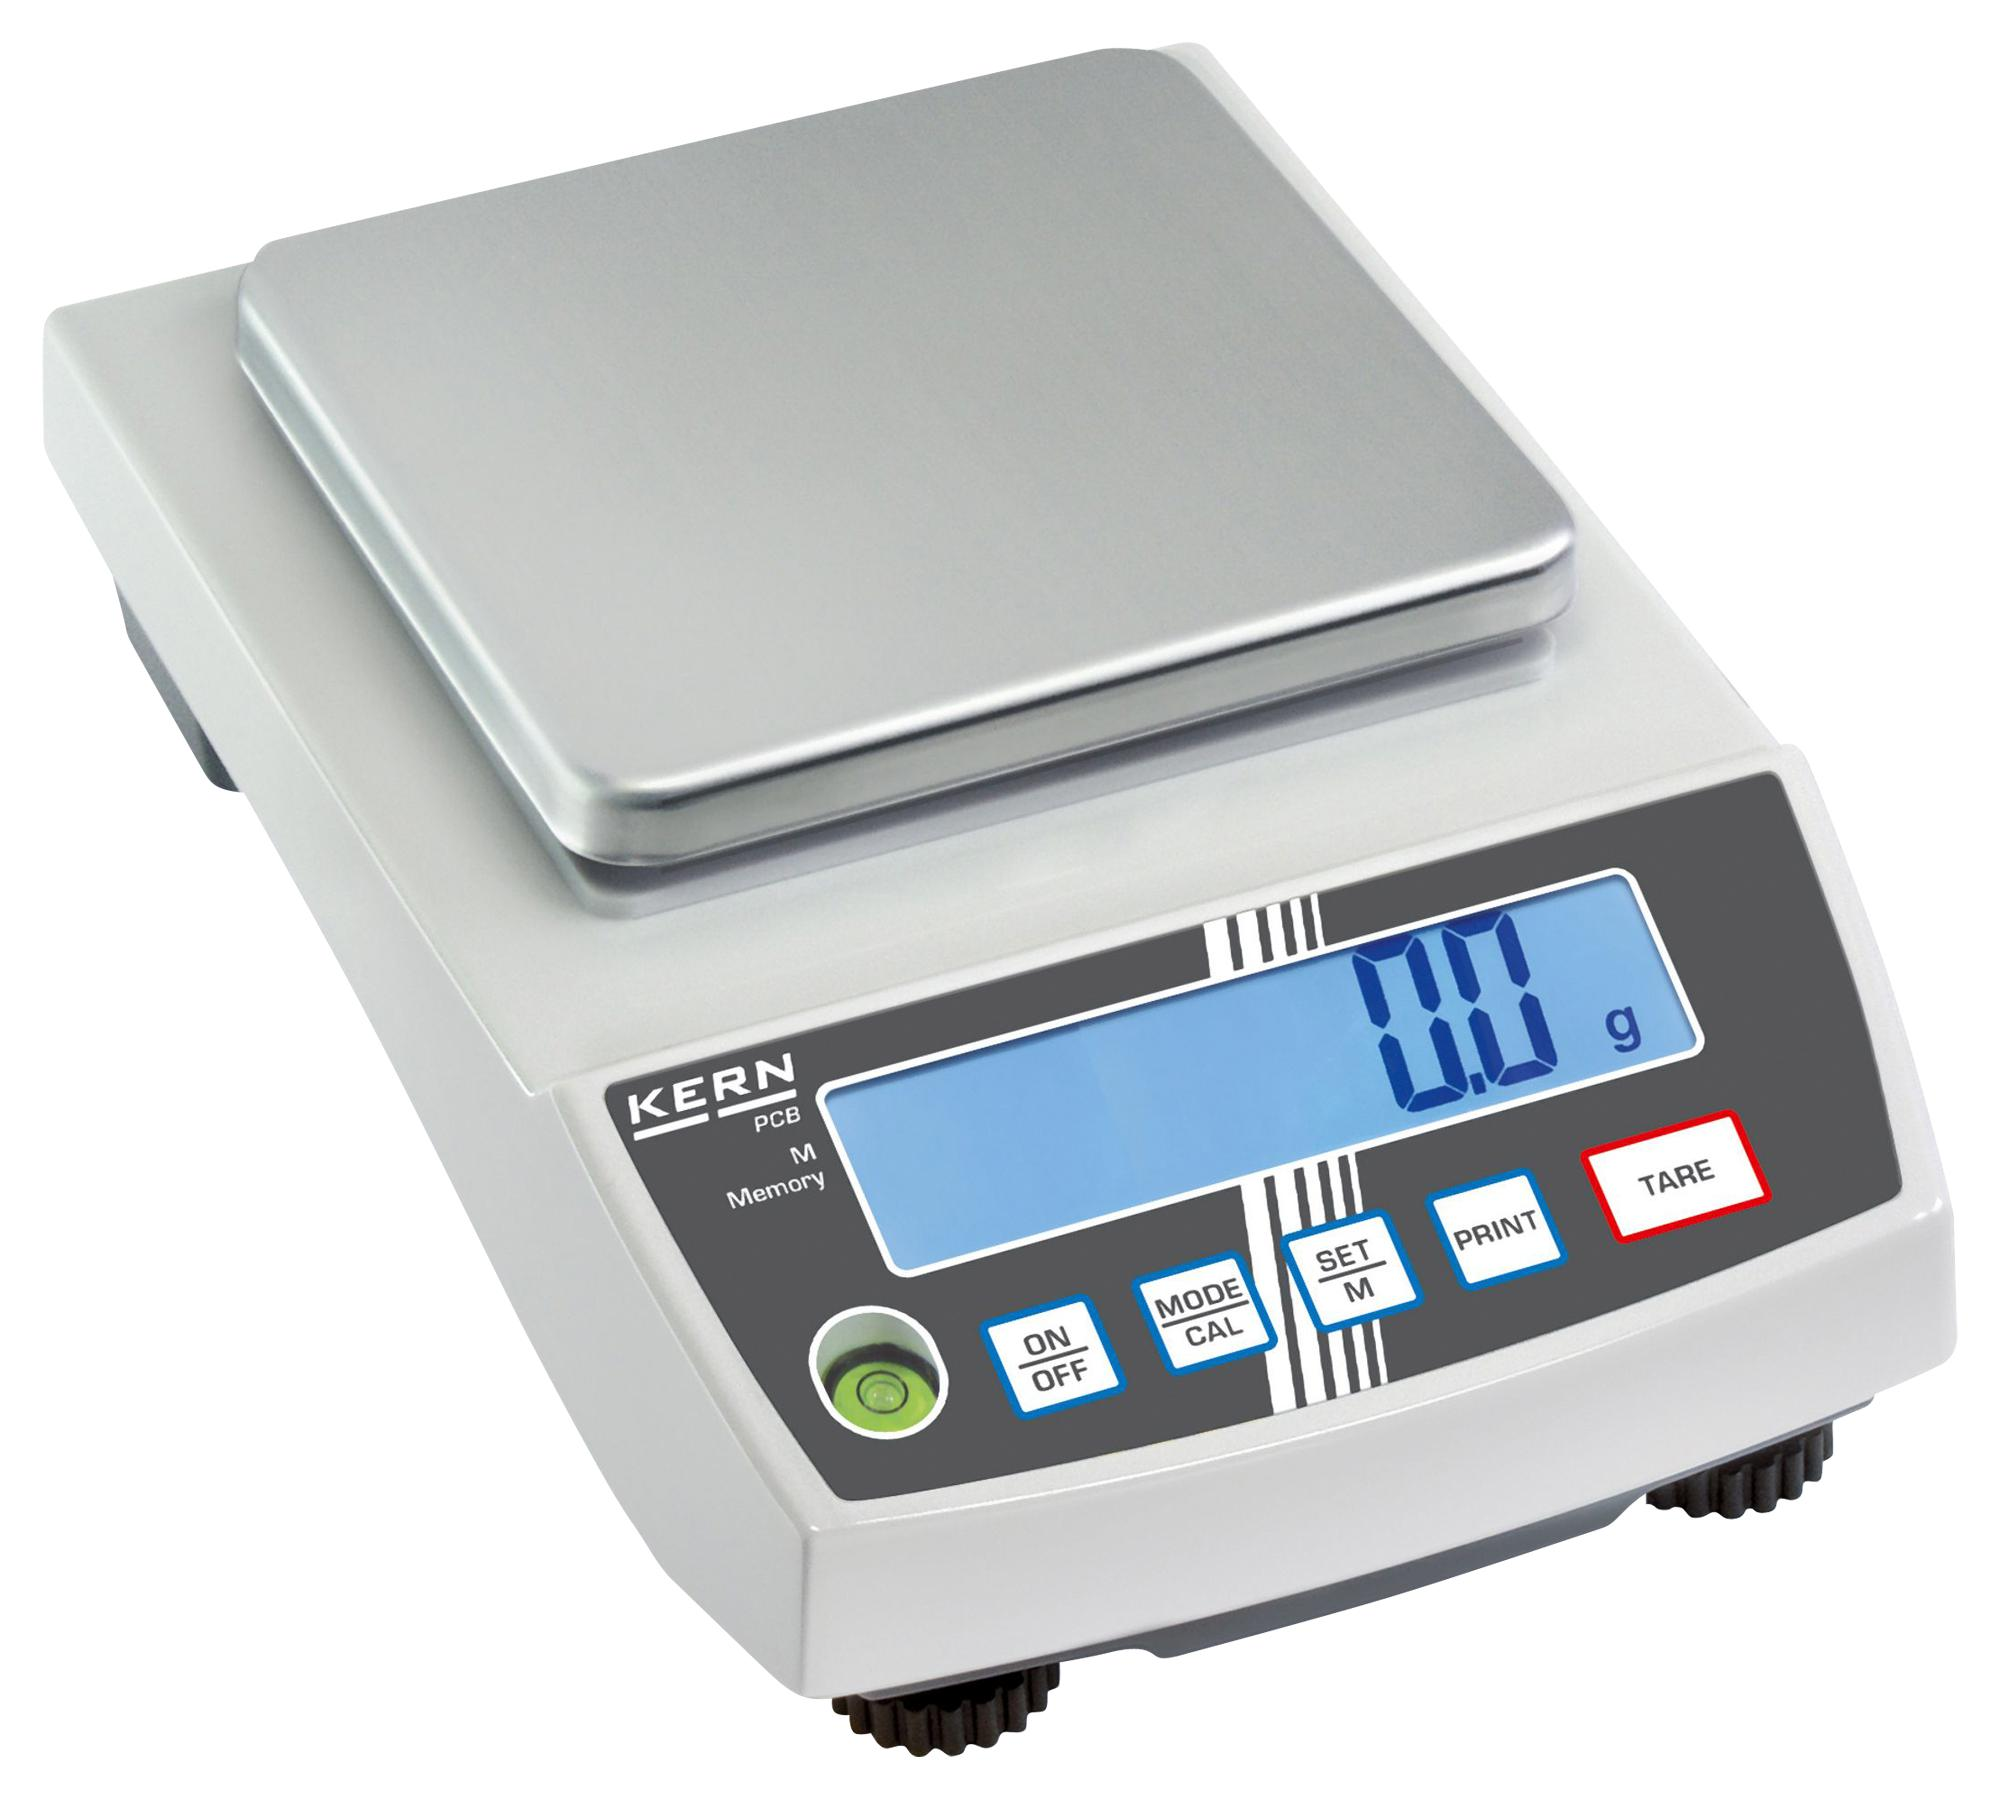 Precision Scale Pcb 1000 2 Balance Precision Electronic Digital 1kg Max Load 01g Resolution